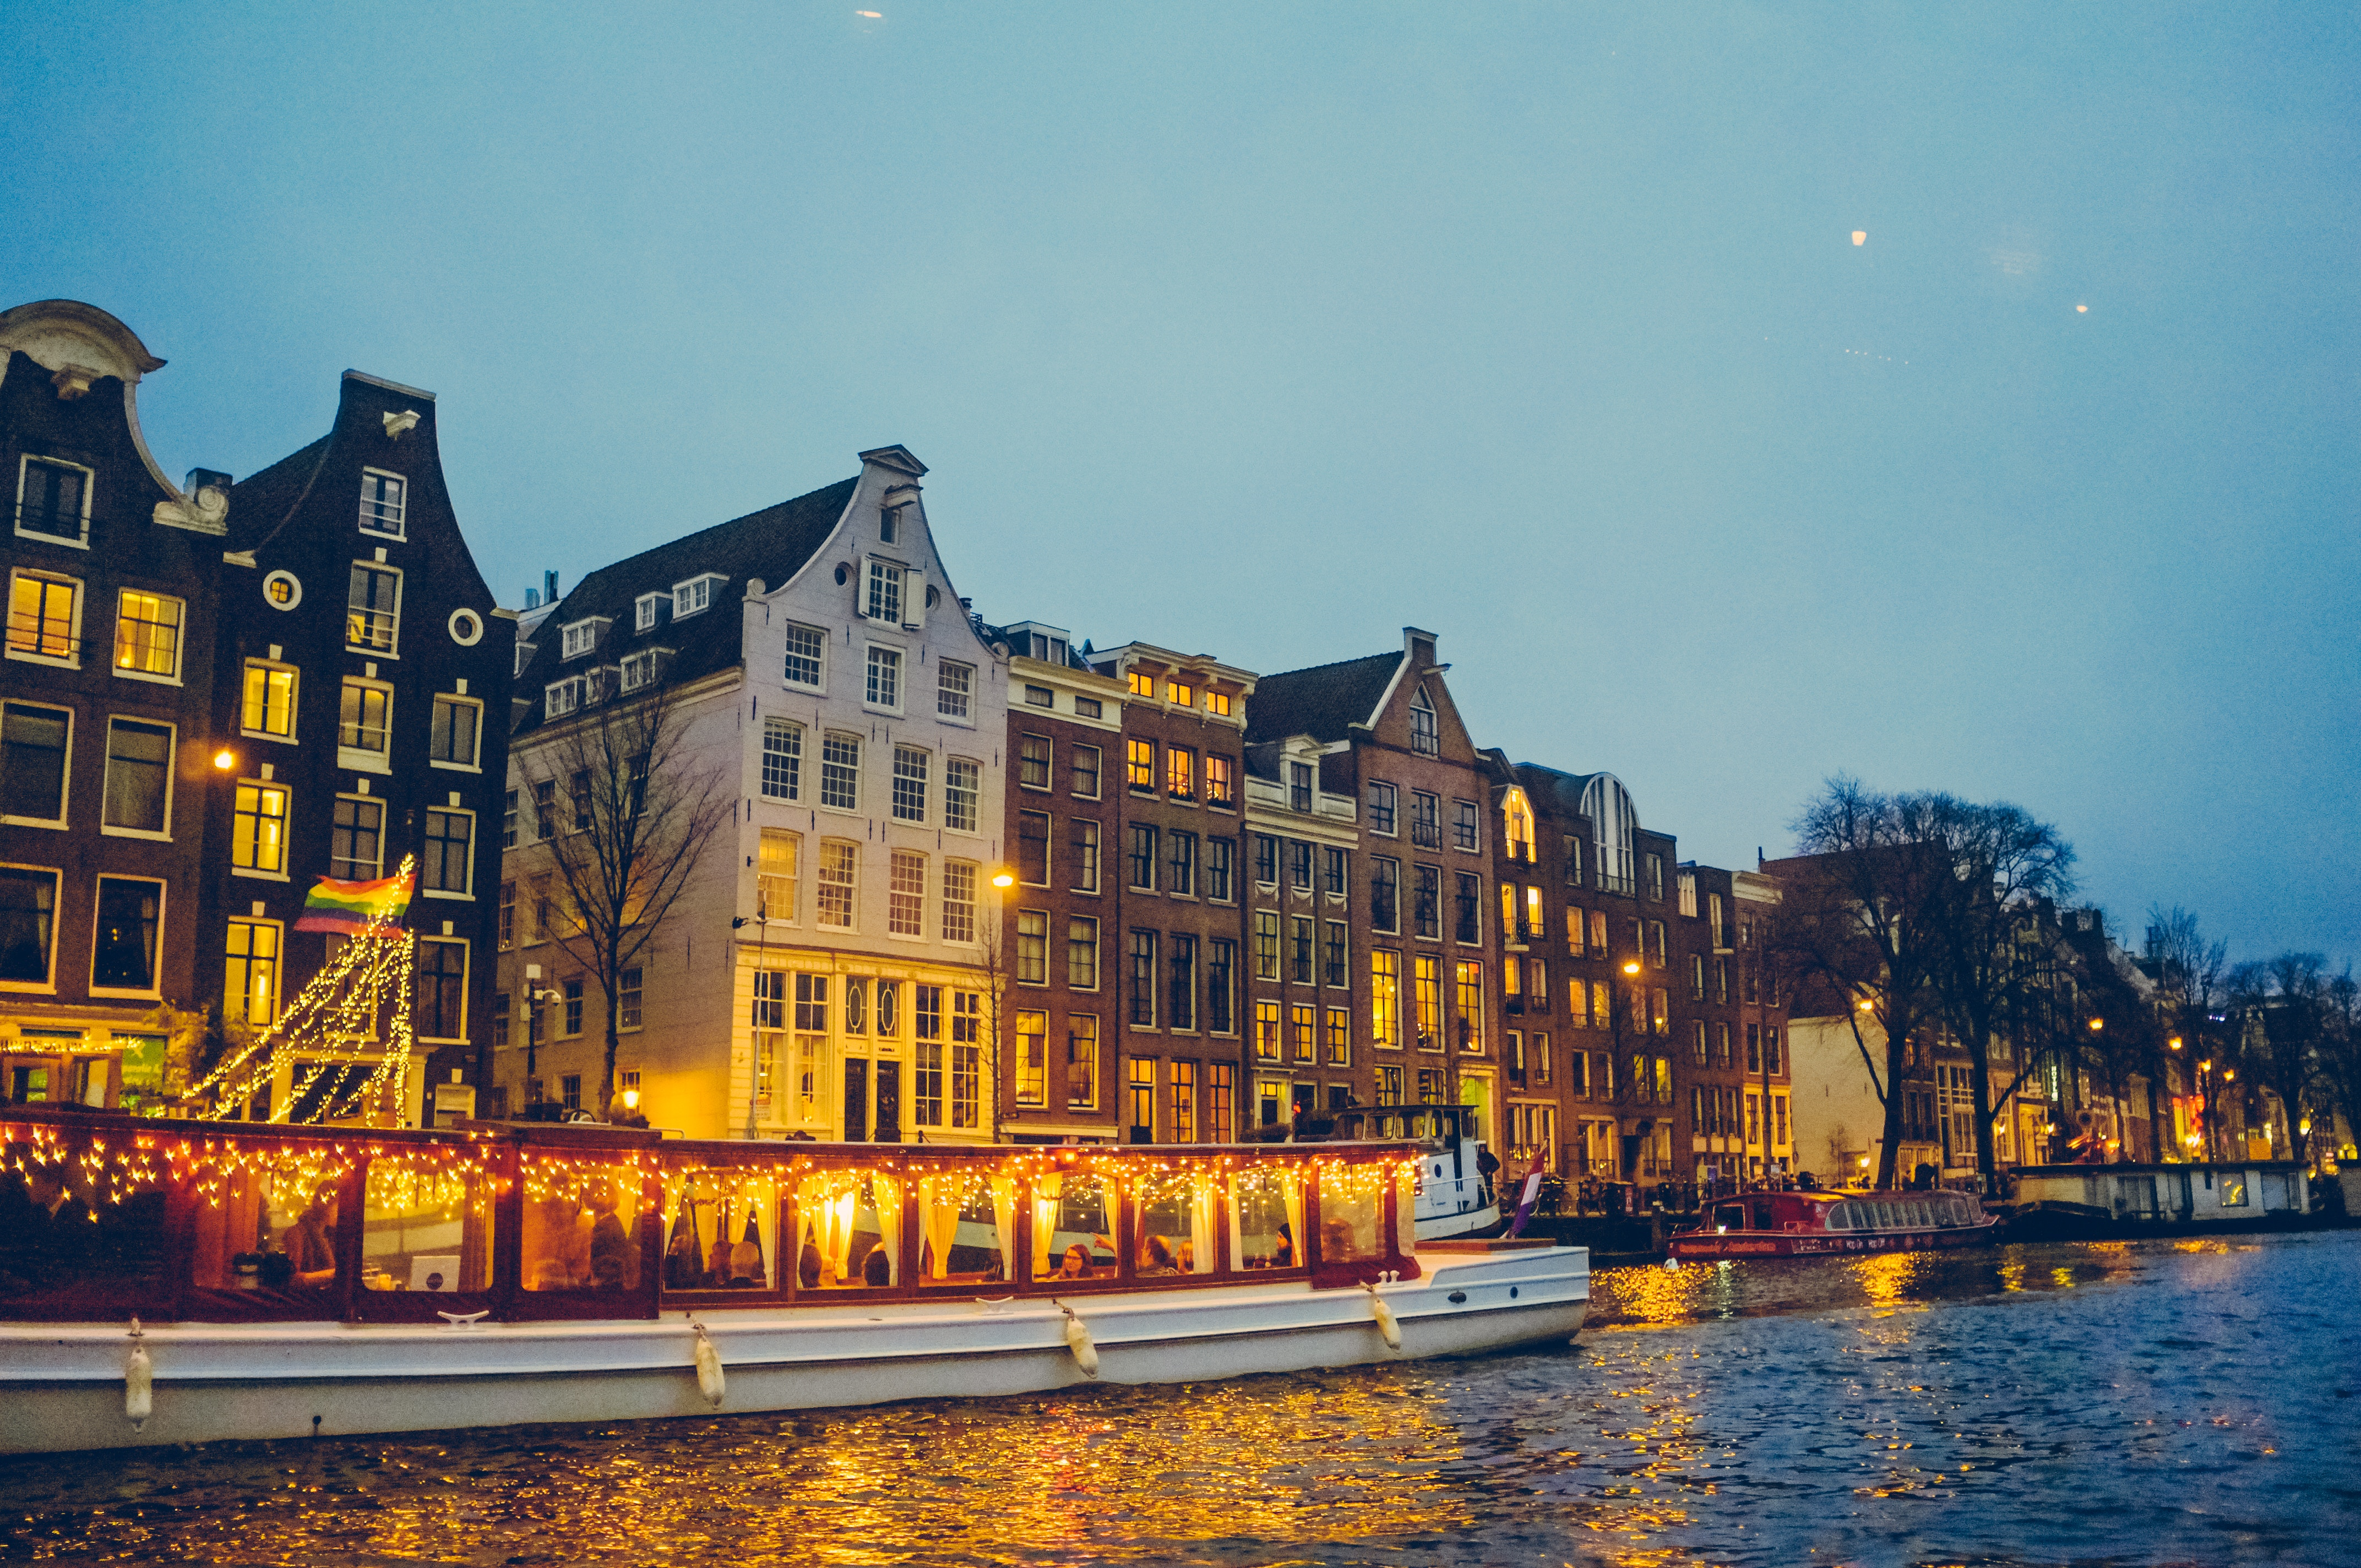 Amsterdam canals & houses